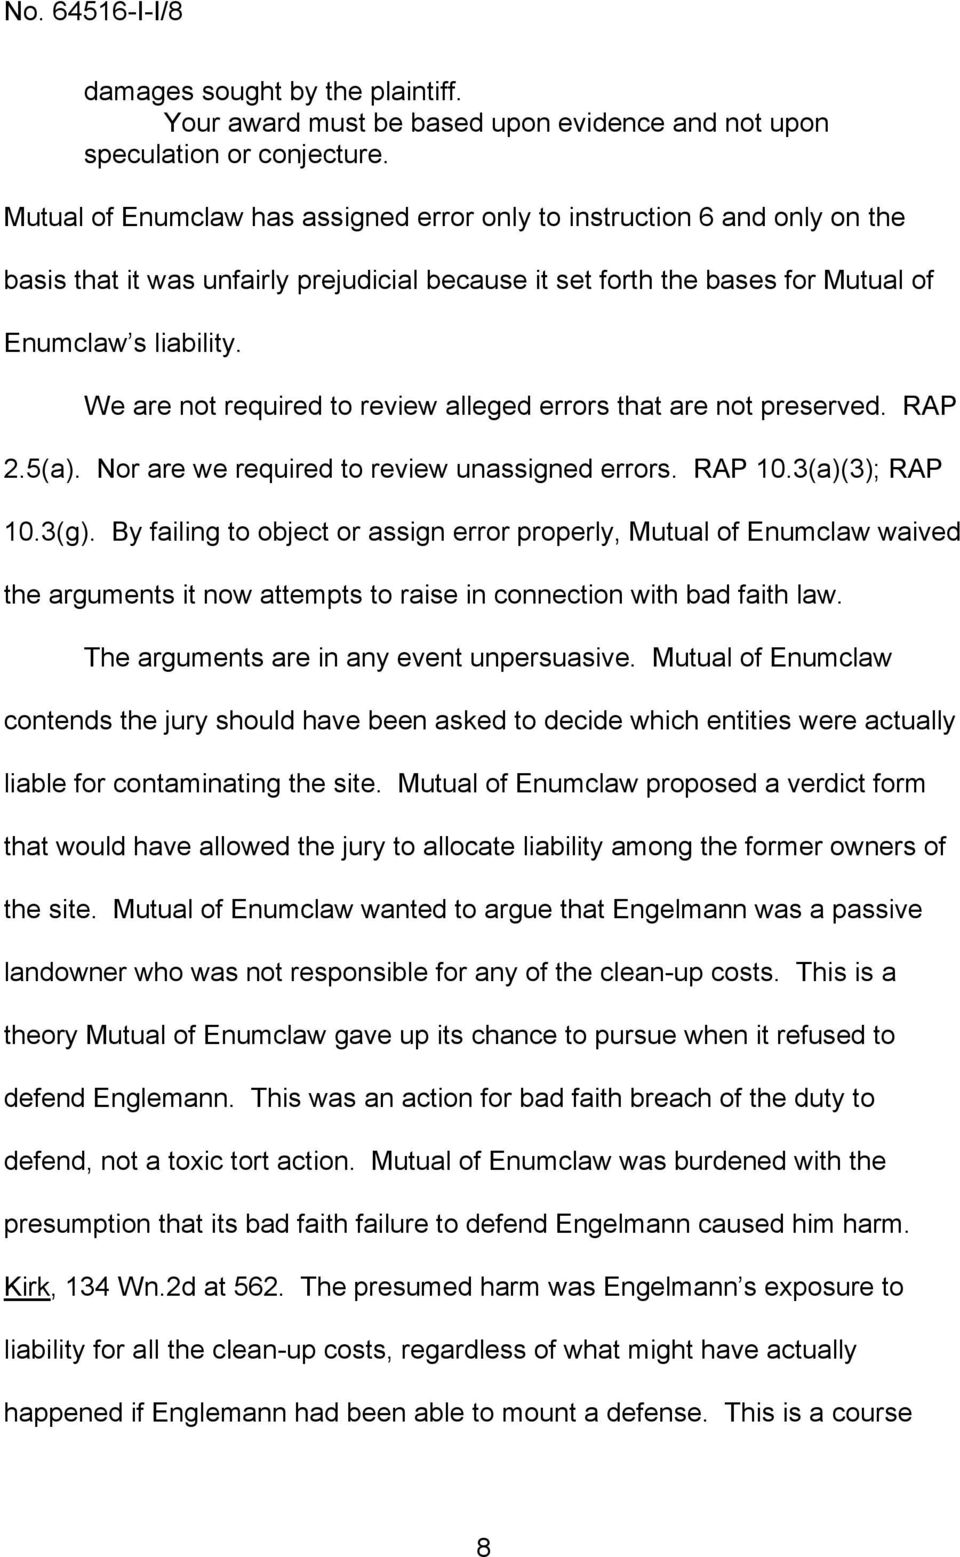 We are not required to review alleged errors that are not preserved. RAP 2.5(a). Nor are we required to review unassigned errors. RAP 10.3(a)(3); RAP 10.3(g).